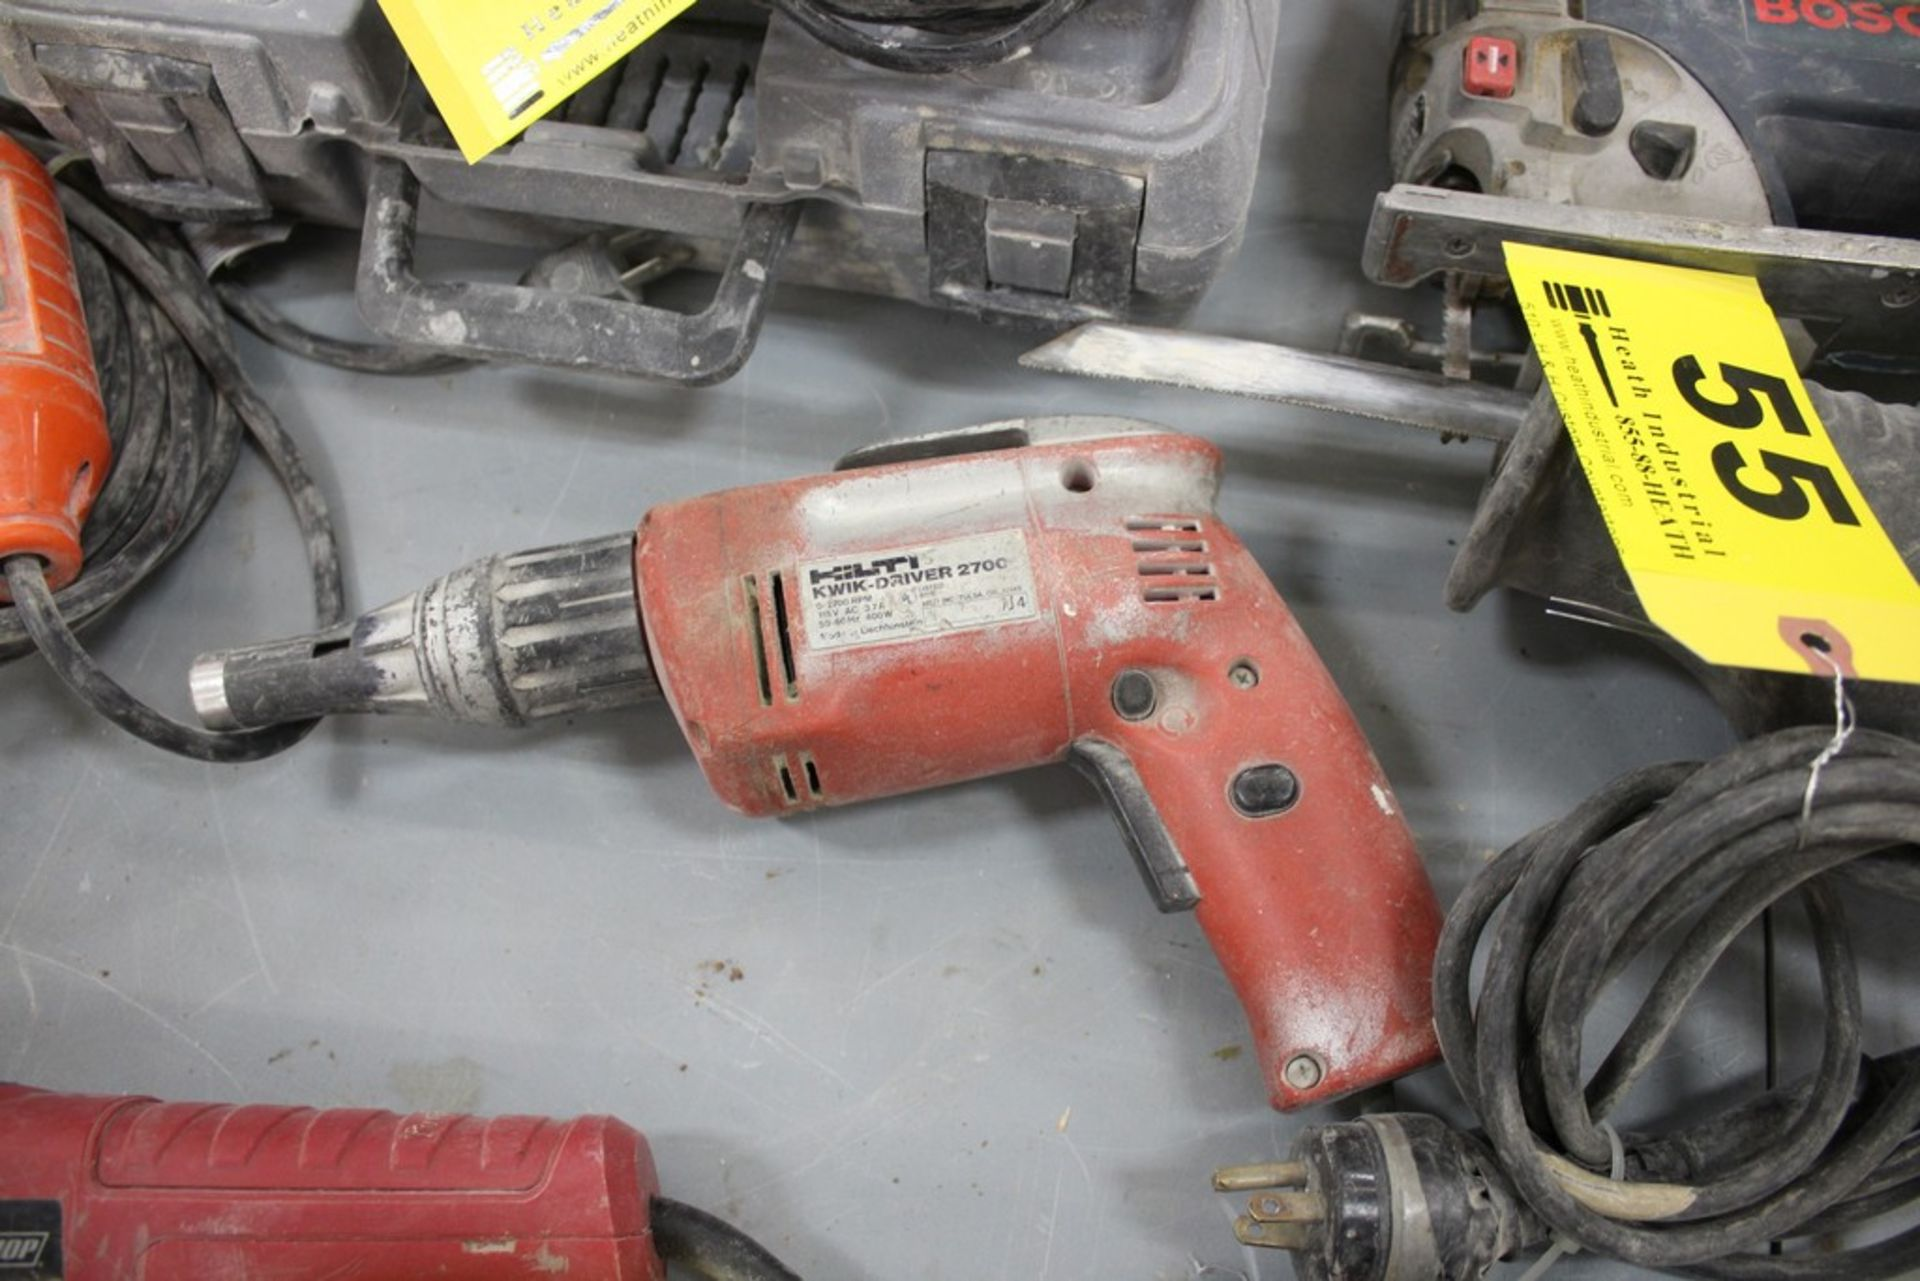 Lot 55 - HILTI KWIK DRIVER 2700 ELECTRIC SCREW GUN